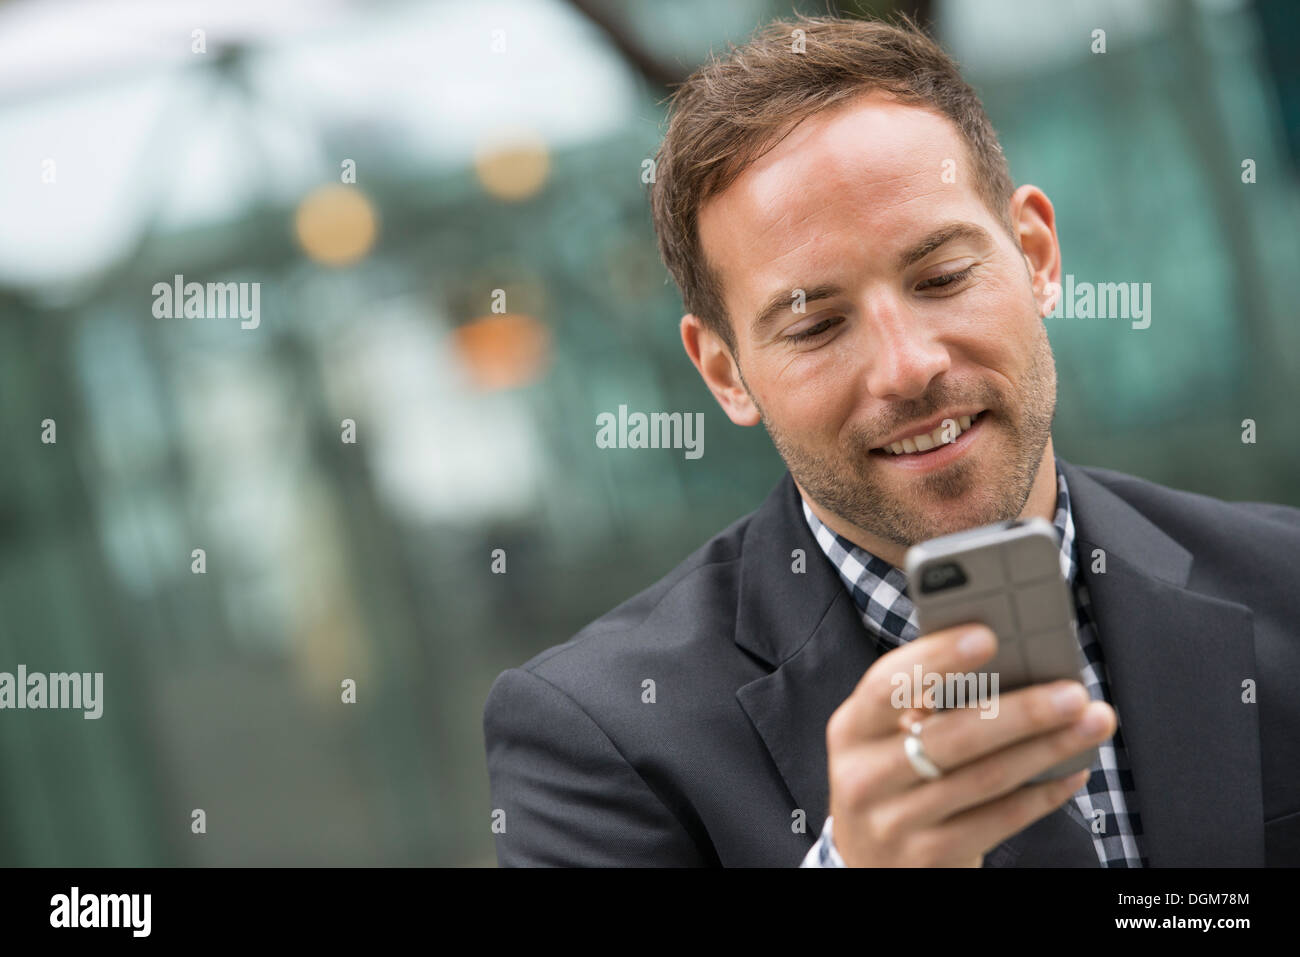 Business people. A man in a business suit. A man with short red hair and a beard, wearing a suit, on his phone. - Stock Image